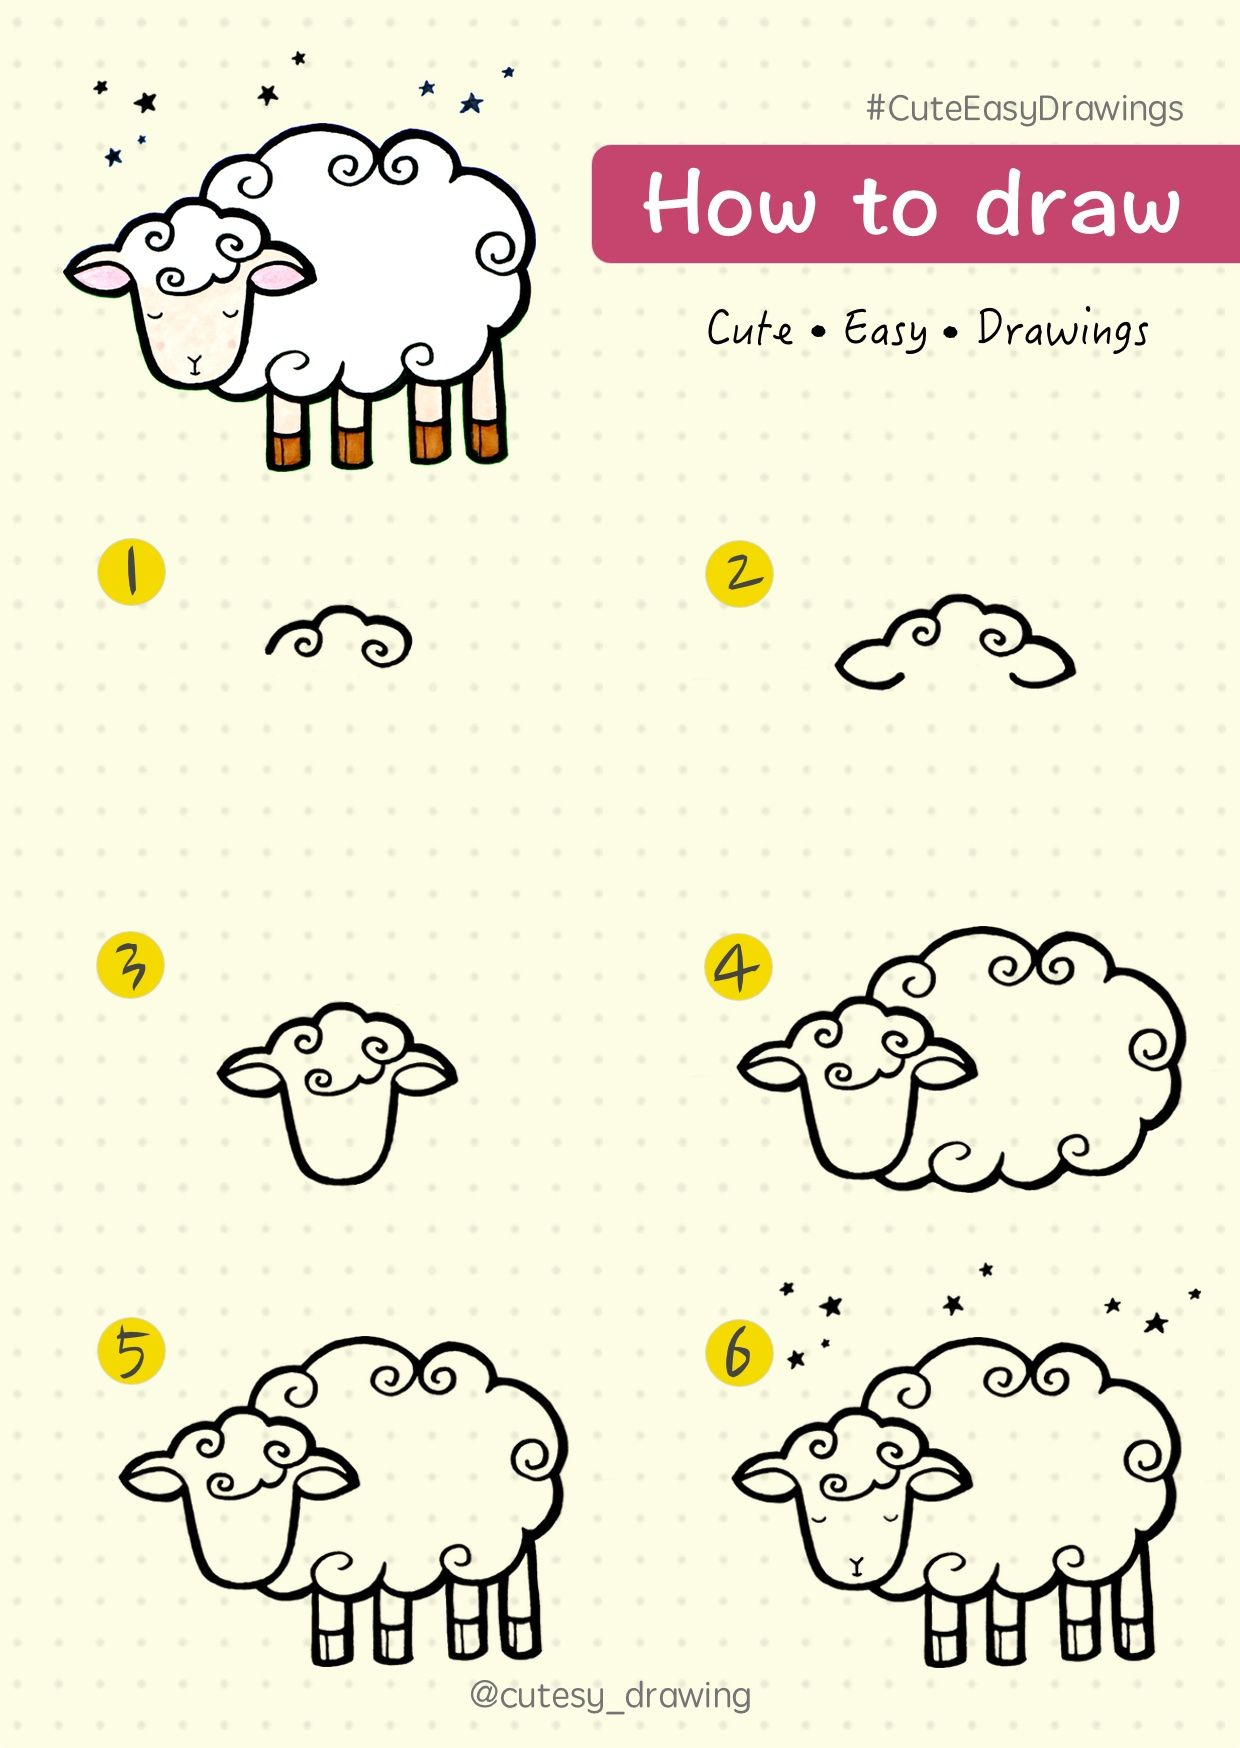 How To Draw Cute Sheep Step By Step Tutorial Cute Easy Drawings Lamb Drawing Cute Sheep